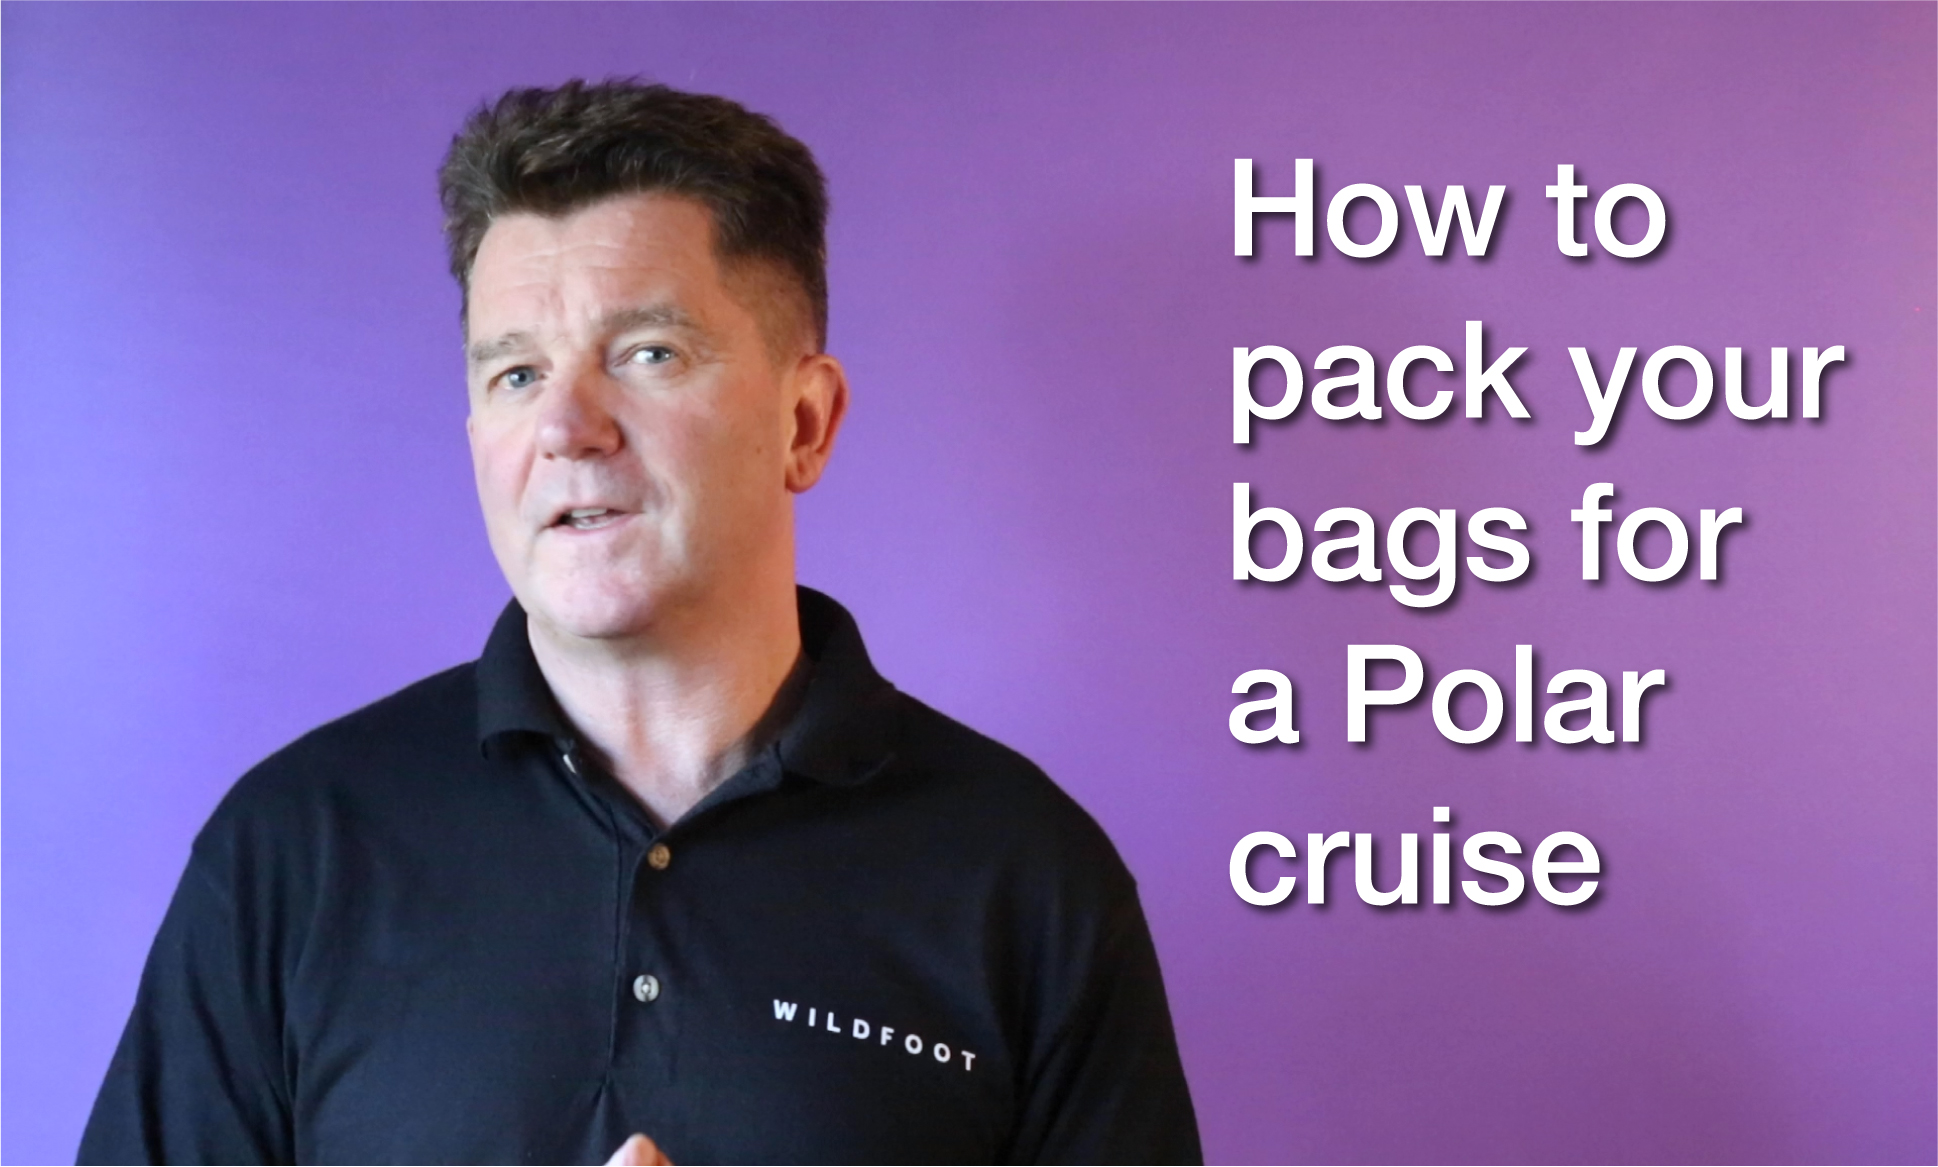 Packing For a Polar Cruise